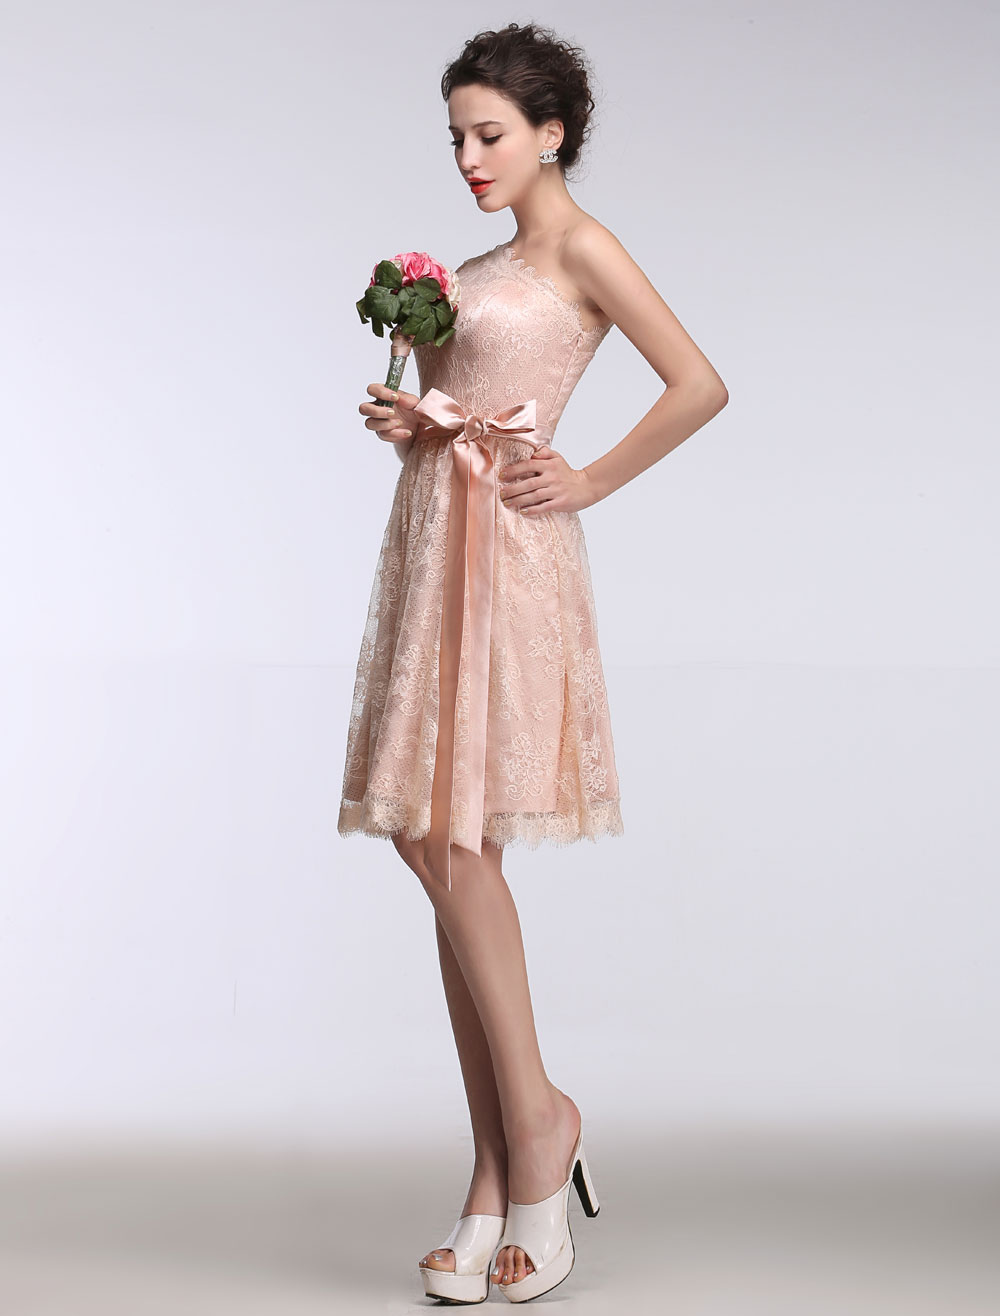 7fc508f04e23 ... Pink Bridesmaid Dress Lace One Shoulder Short Prom Dress Sleeveless A  Line Ribbon Bow Sash Knee. 12. 45%OFF. Color:Blush Pink